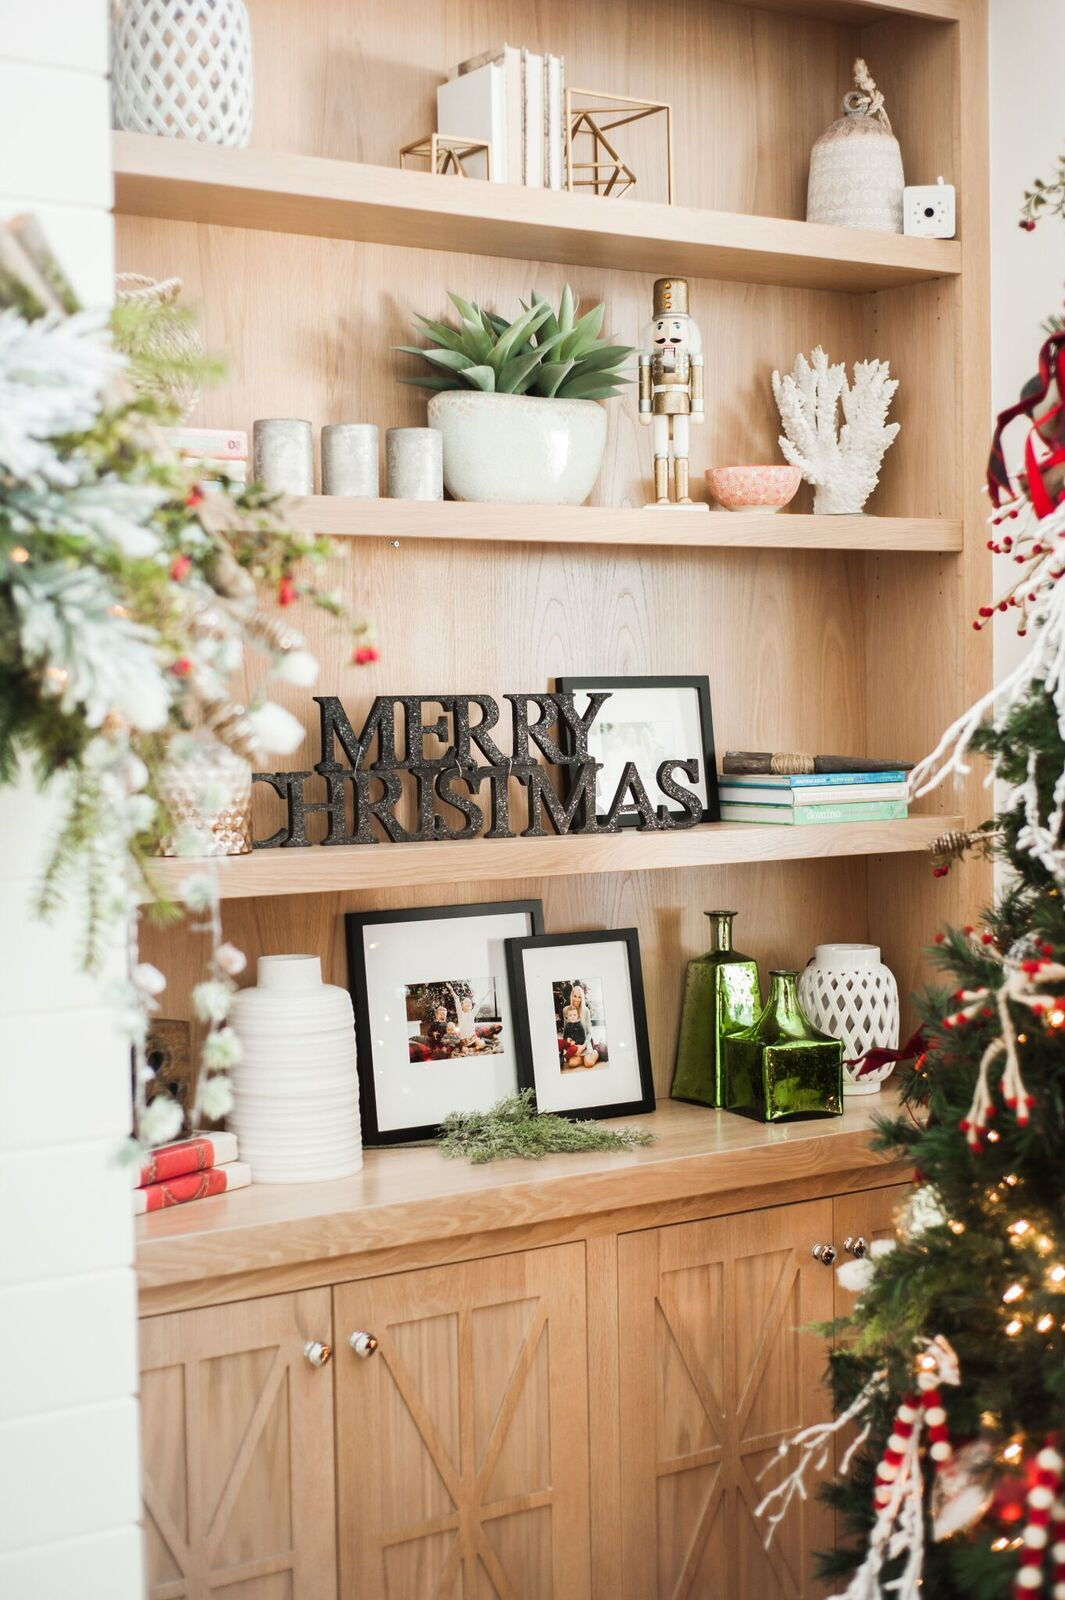 Built In Bookcase Christmas Decor How To Decorate Your Living Room For Simple And Subtle